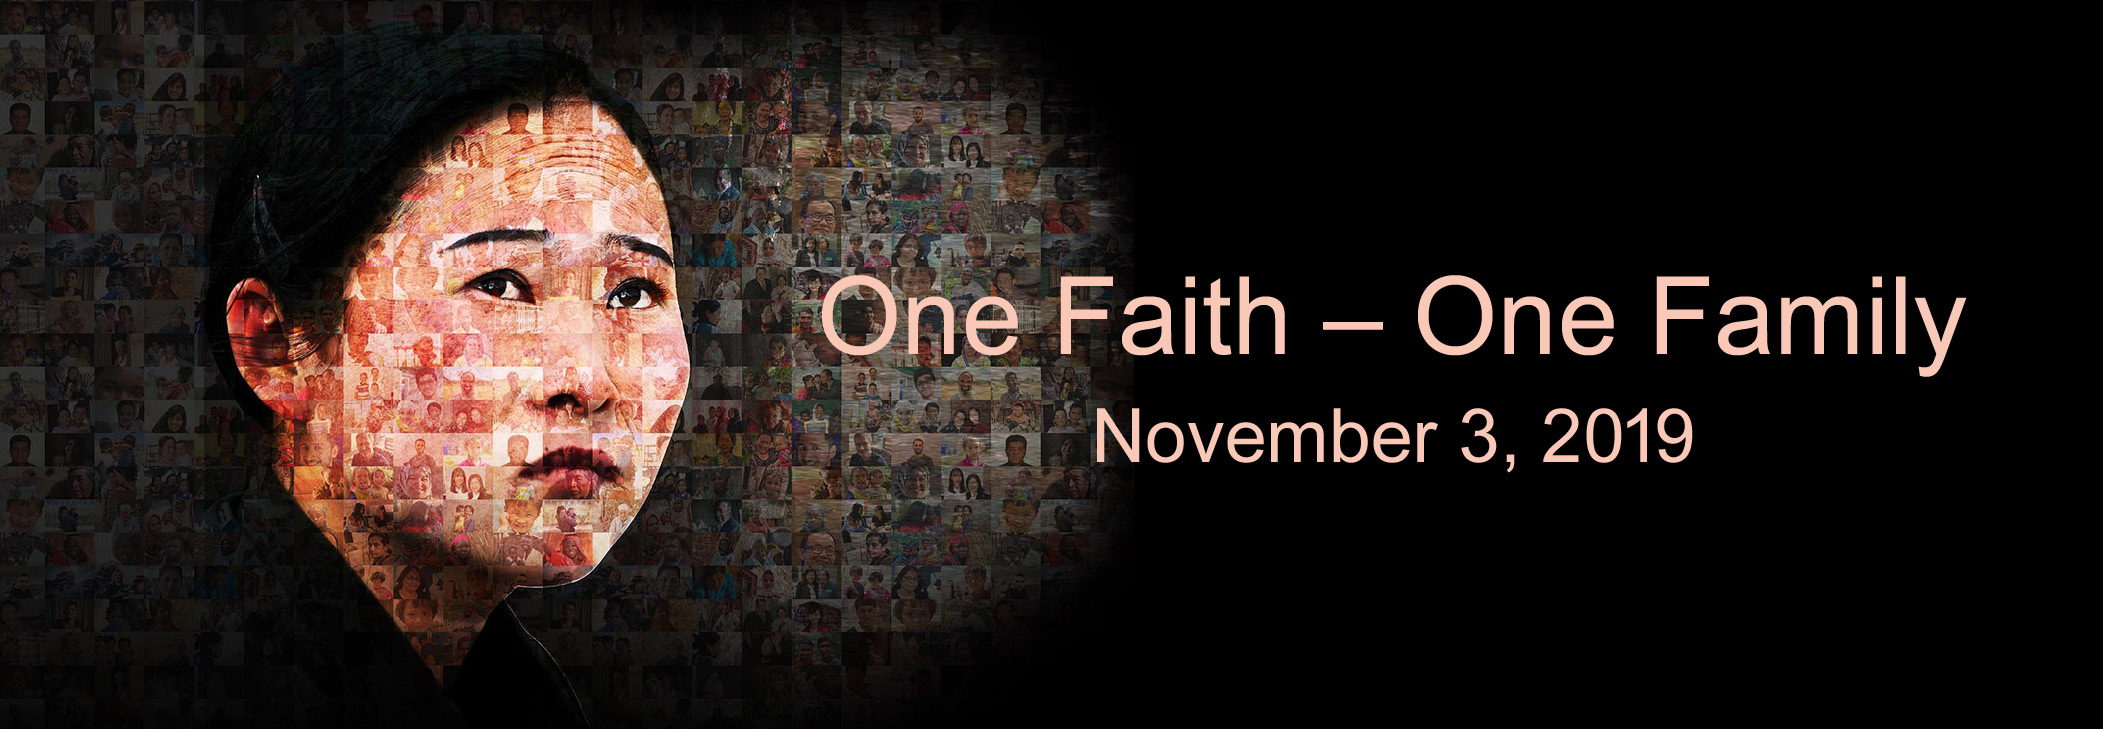 IDOP 2019 - One Faith - One Family - November 3, 2019